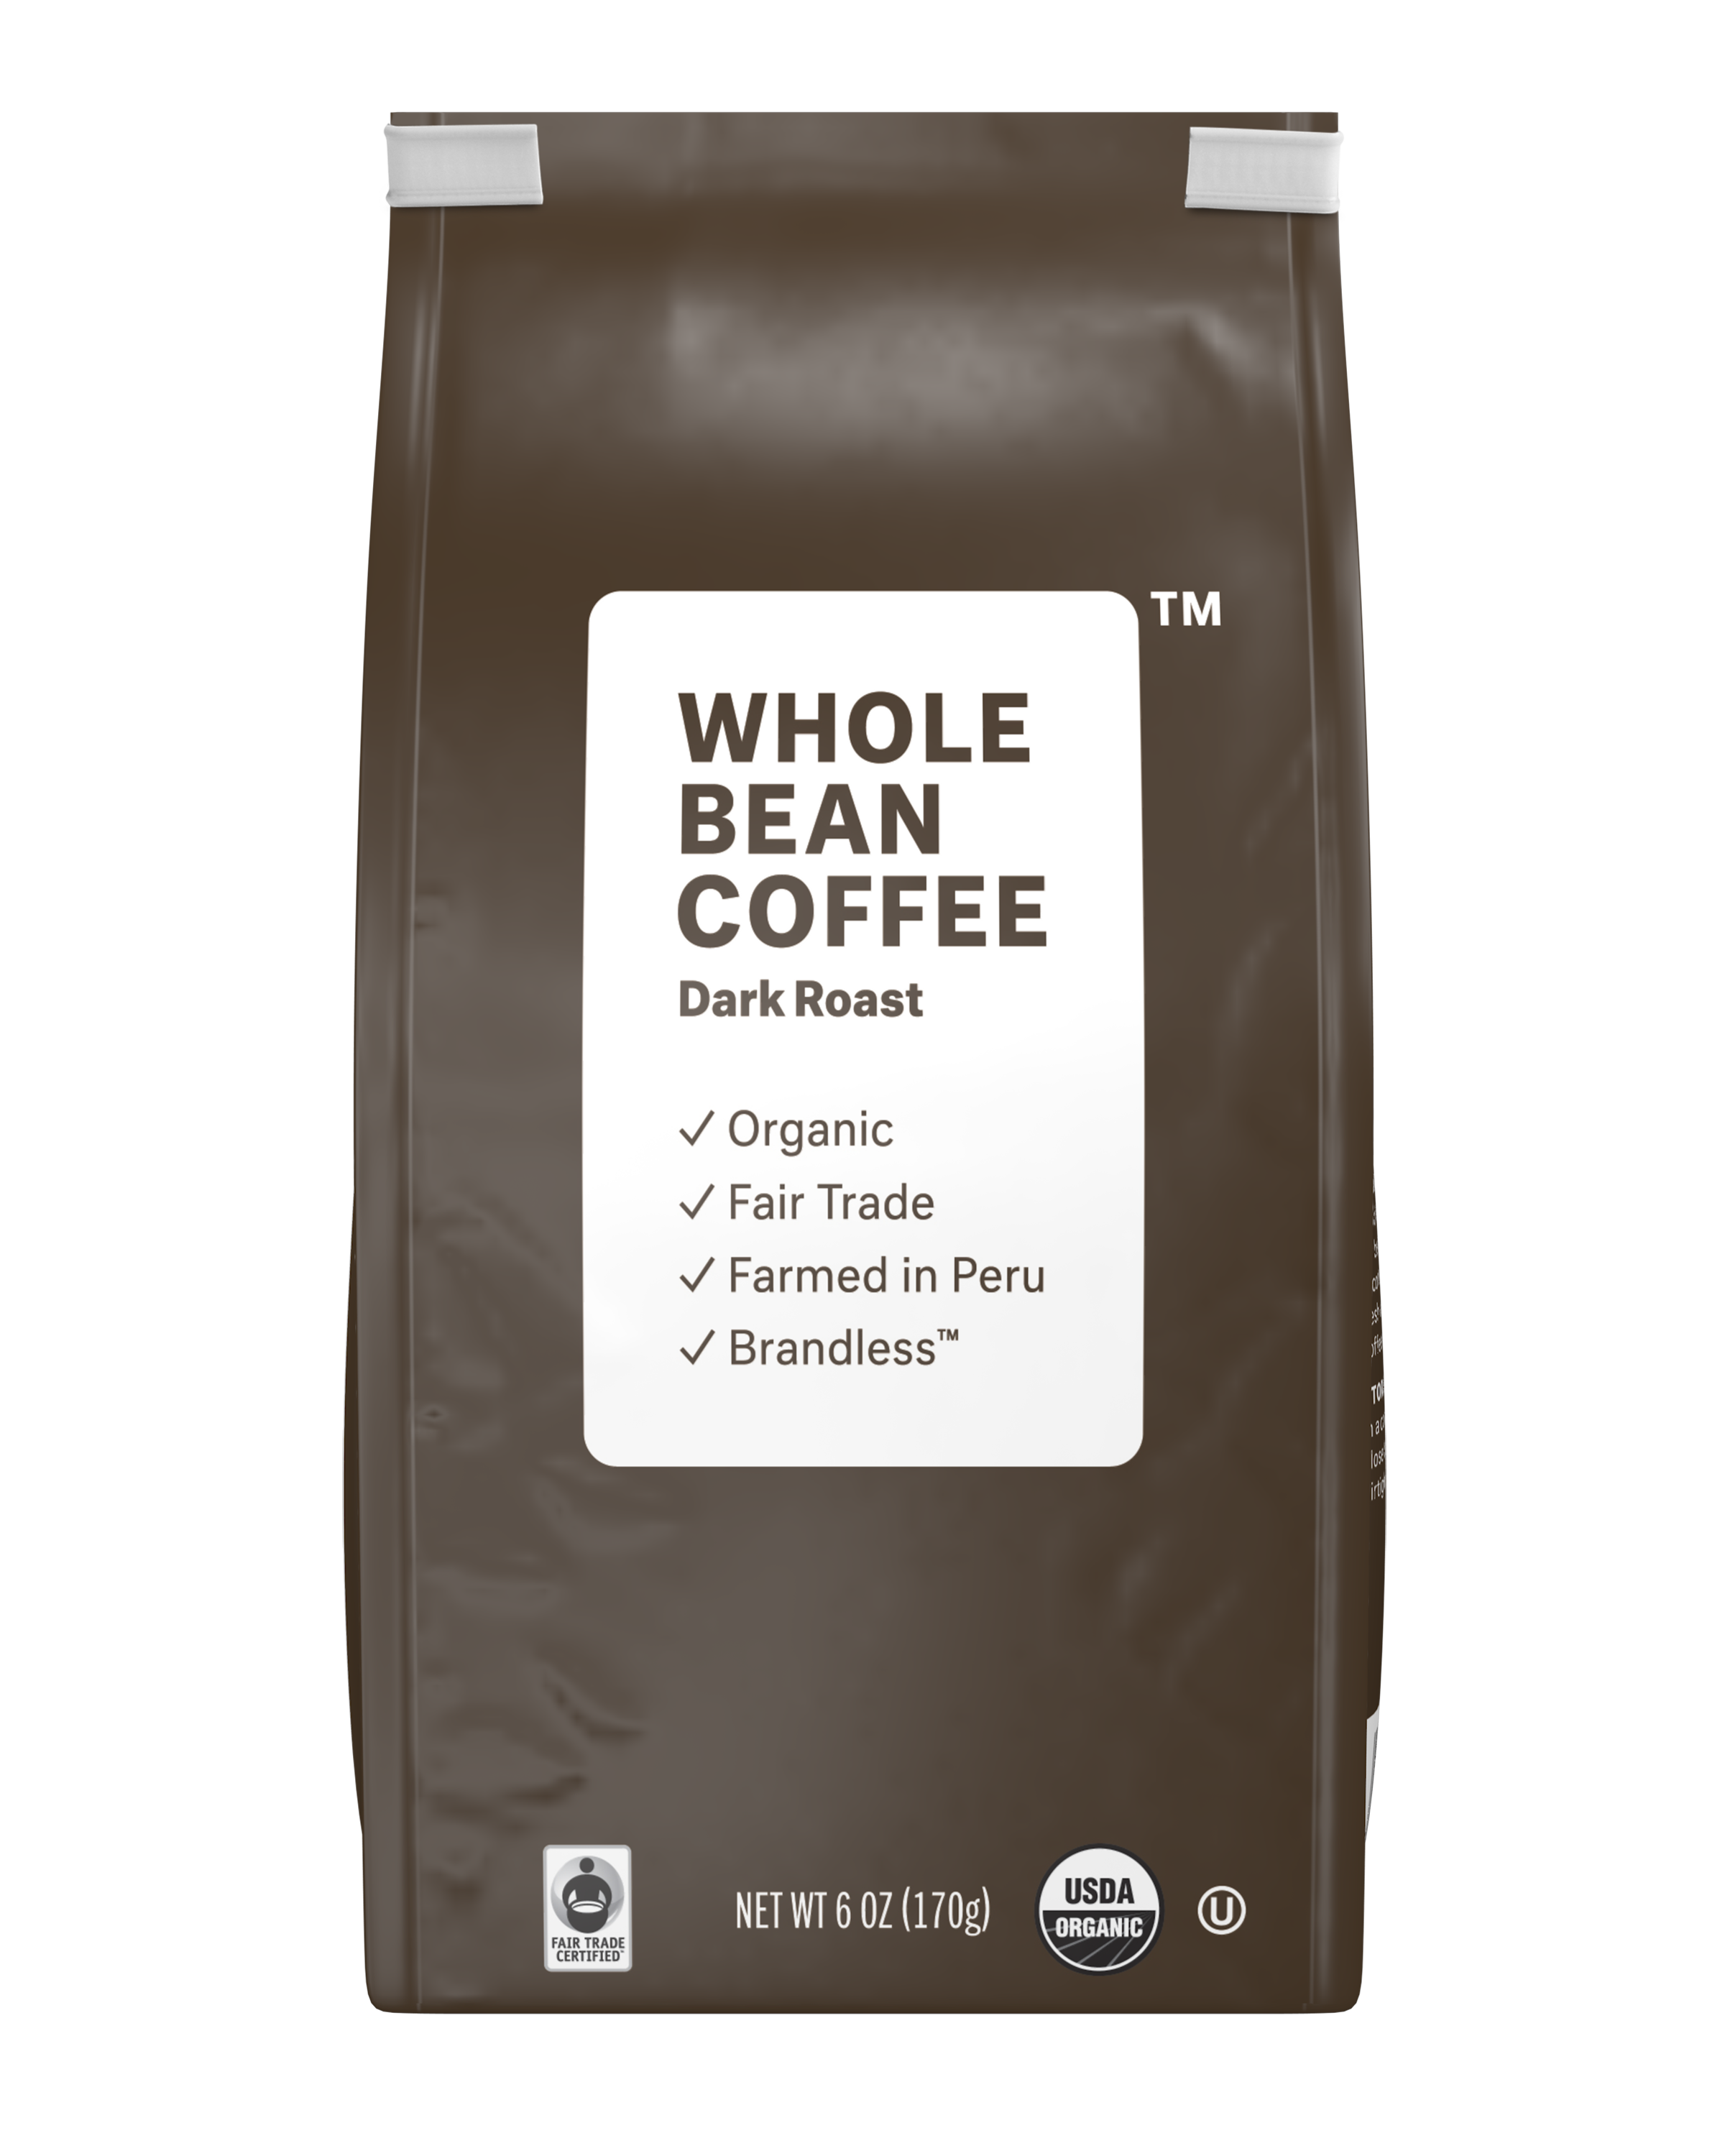 Brandless: Whole Bean Coffee, Dark Roast